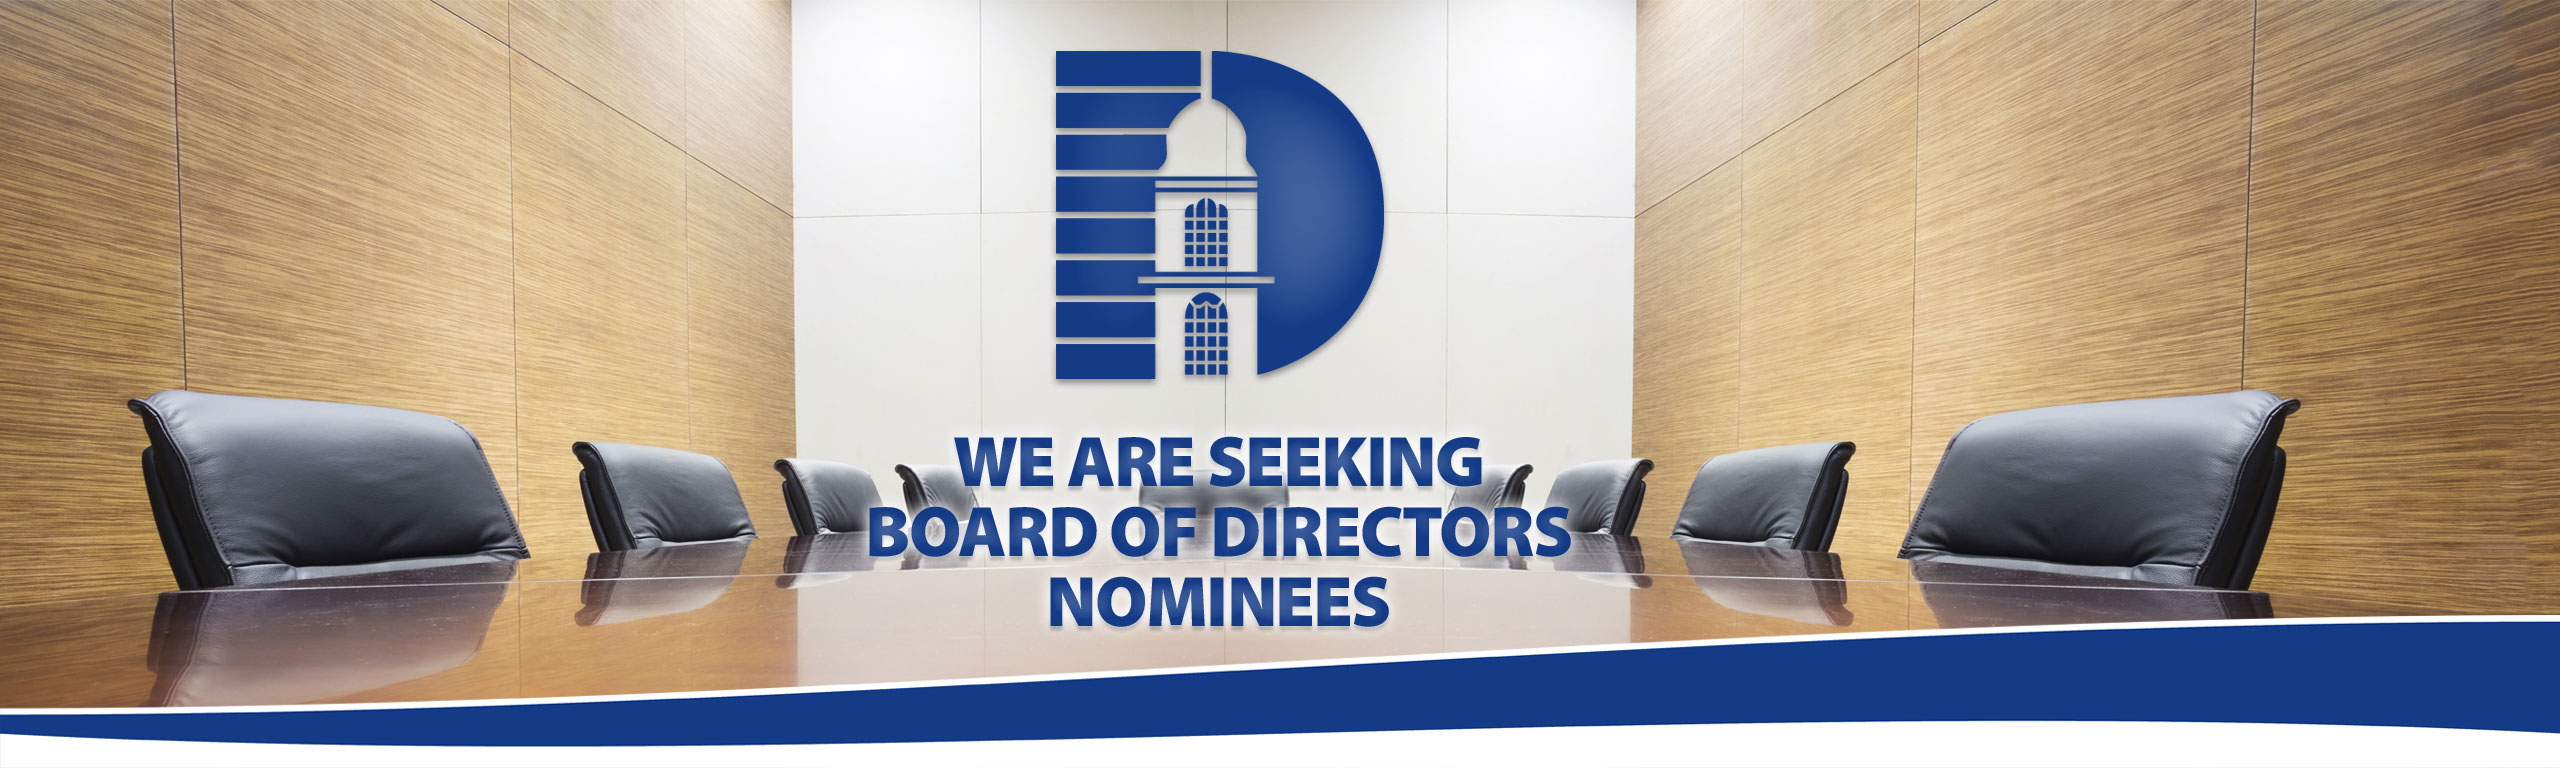 We Are Seeking Board of Directors Nominees